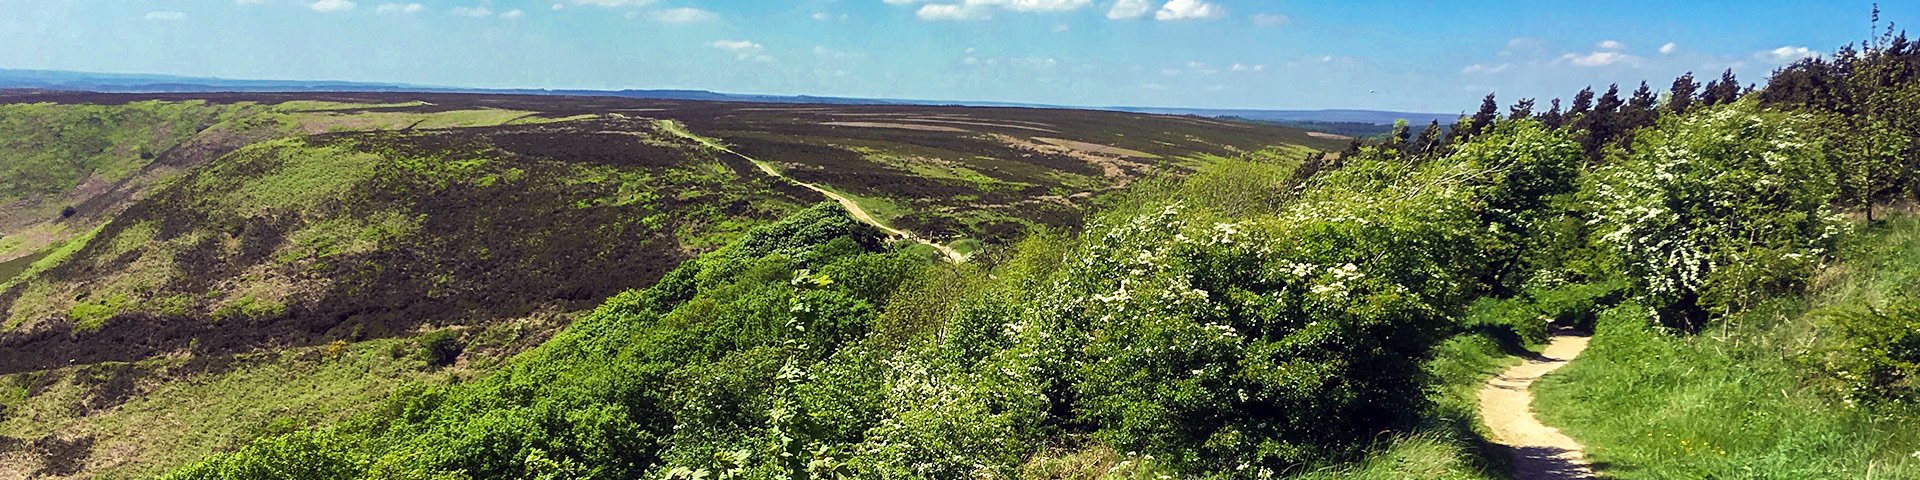 Hiking with family in North York Moors, UK